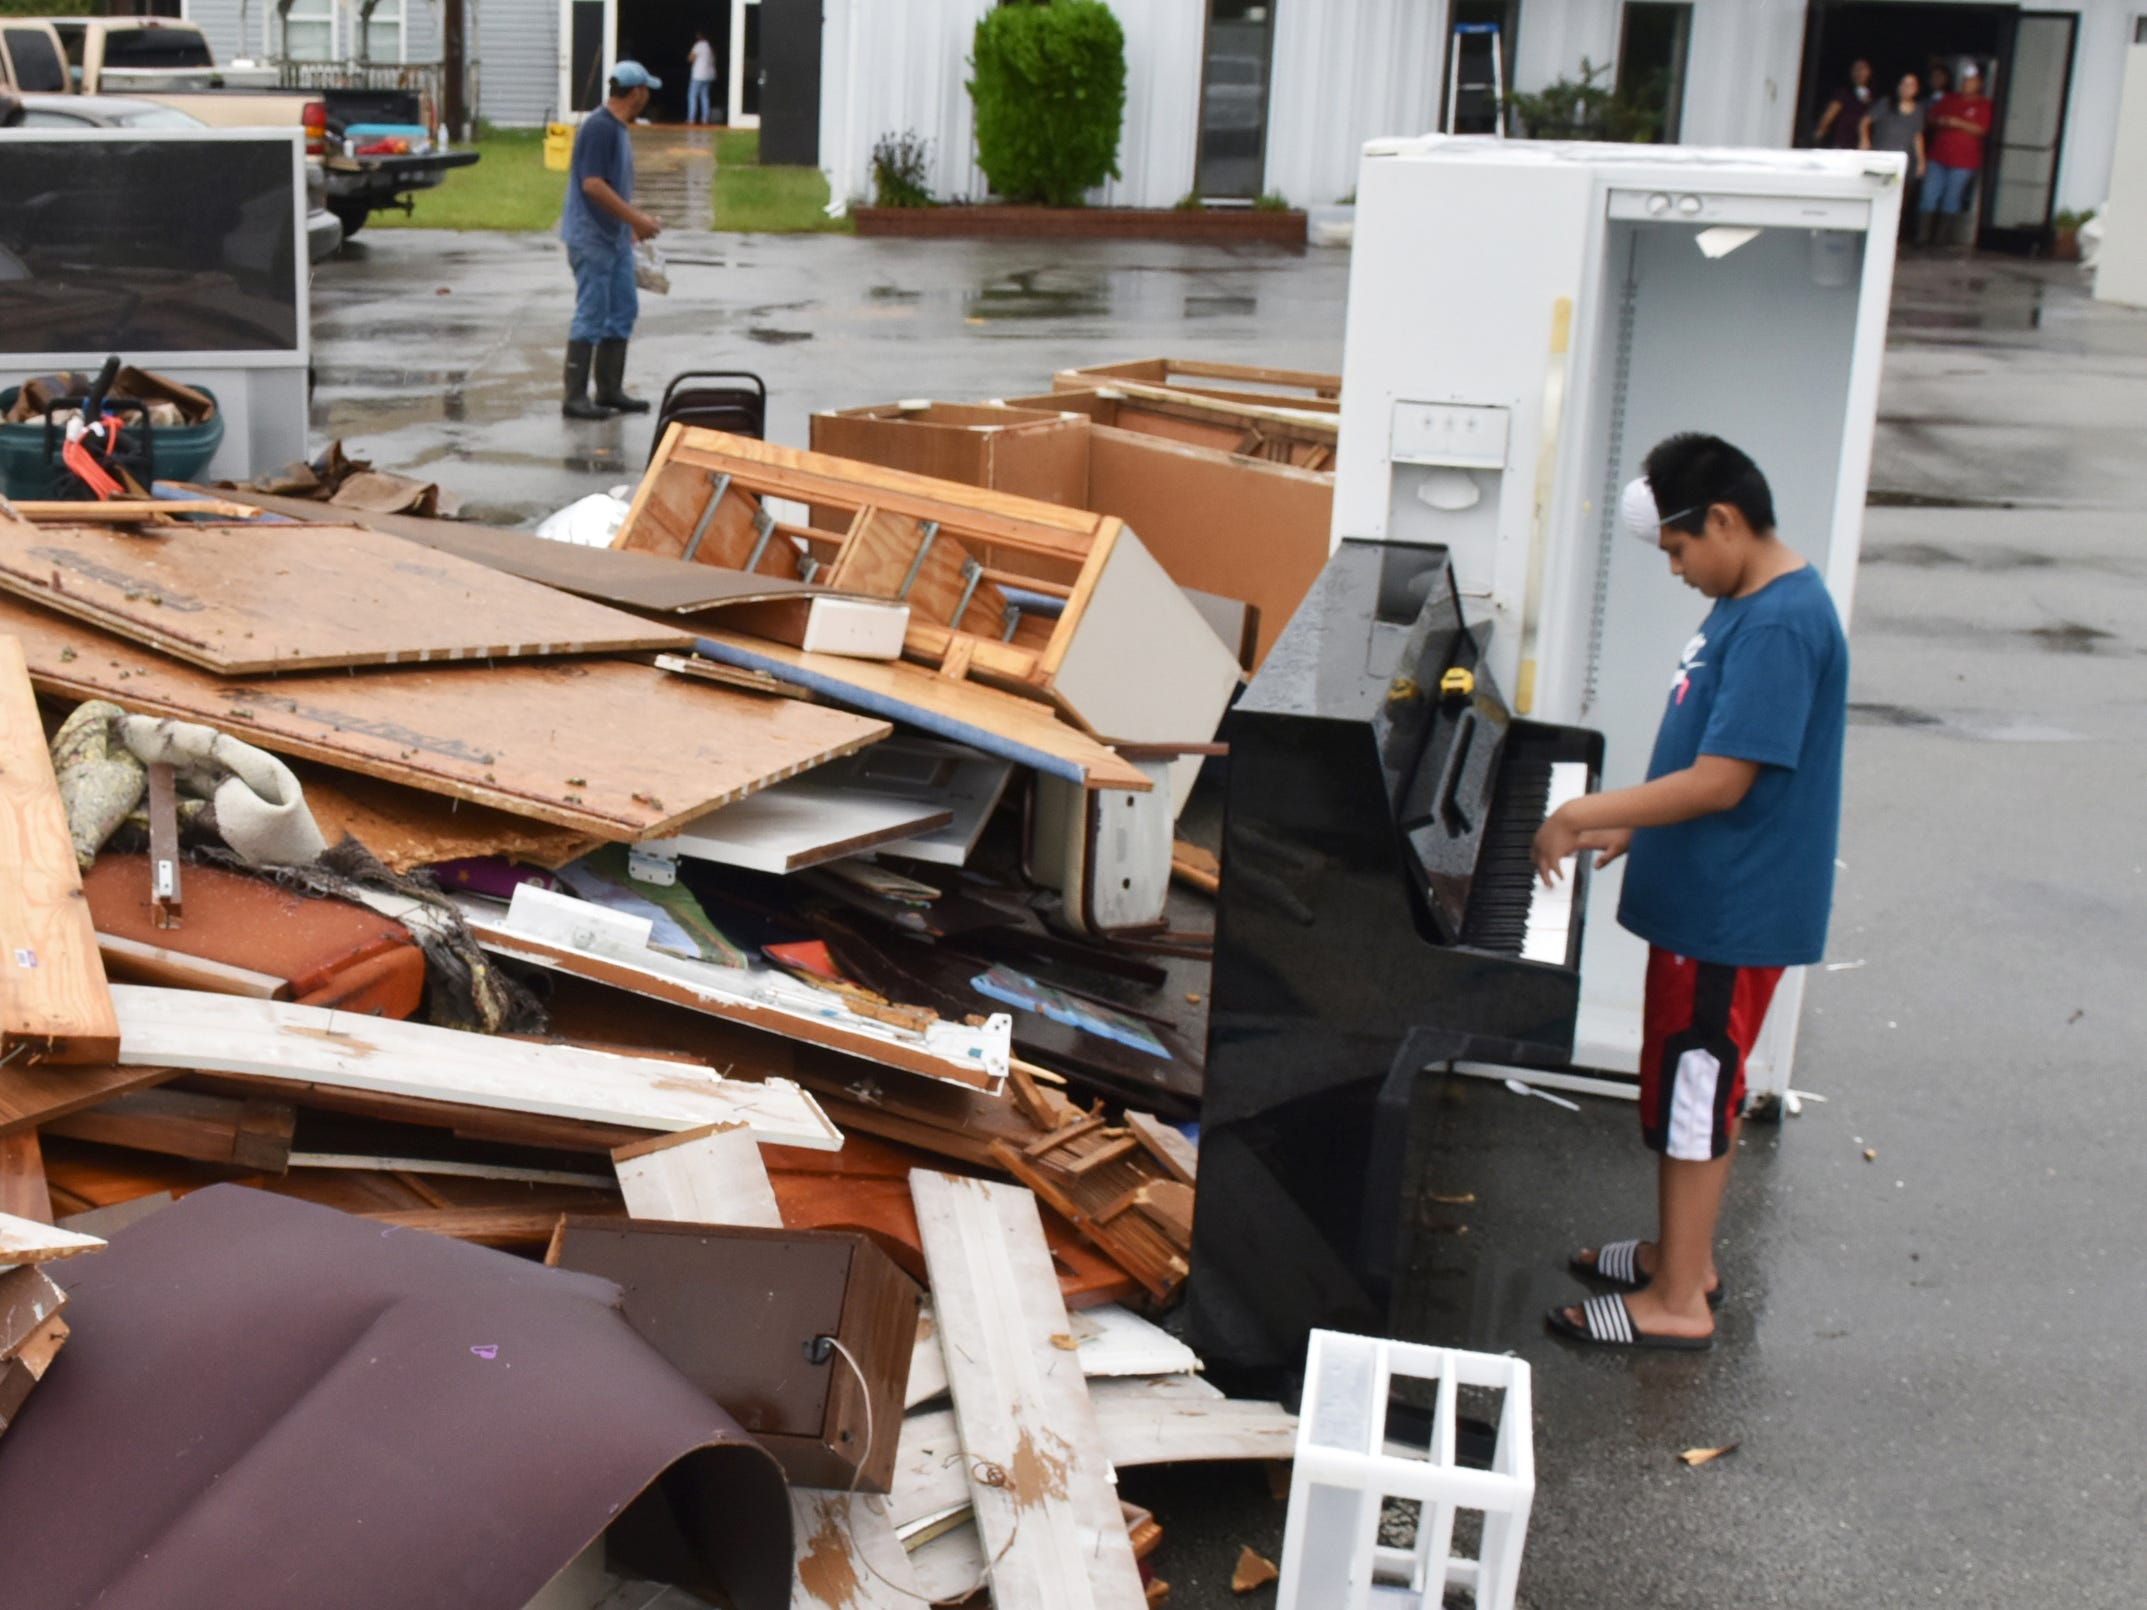 Manuel Osirio, 12, of Moorehead City, N.C., plays a piano among the pile of water soaked items being thrown out at the Seventh-Day Adventist Church in New Bern, N.C., Sunday, Sept. 16, 2018.